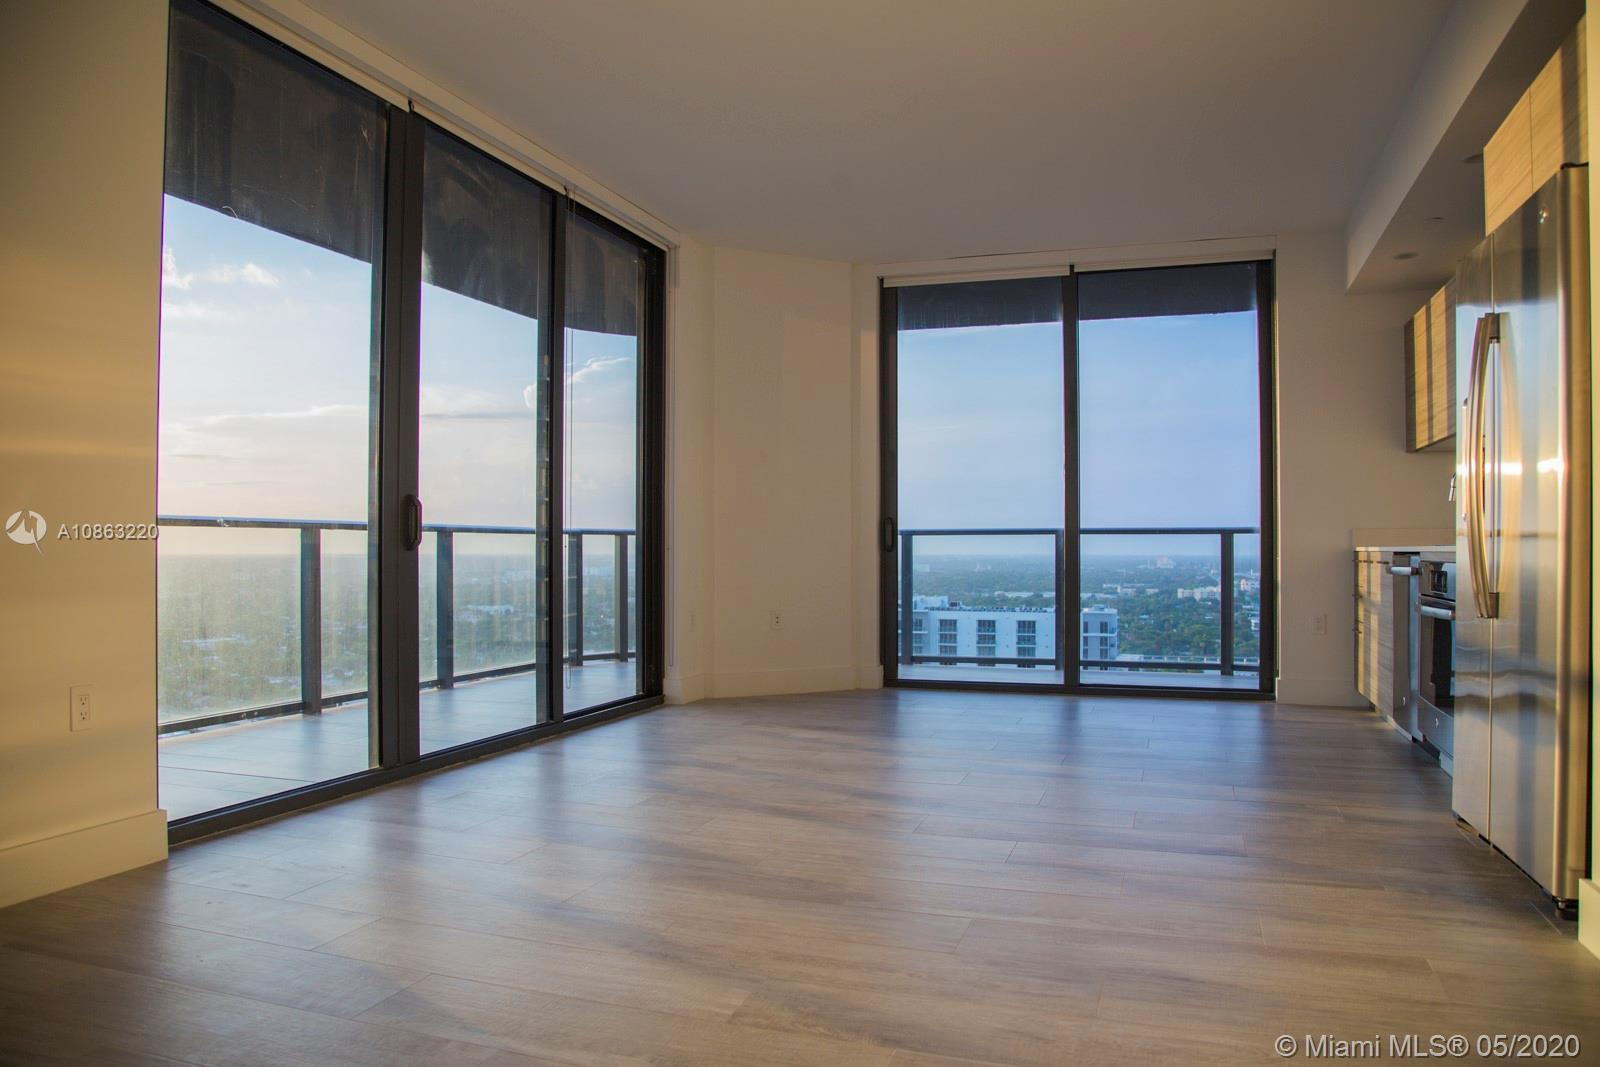 121 NE 34th St # 2616, Miami, Florida 33137, 2 Bedrooms Bedrooms, ,2 BathroomsBathrooms,Residential,For Sale,121 NE 34th St # 2616,A10863220